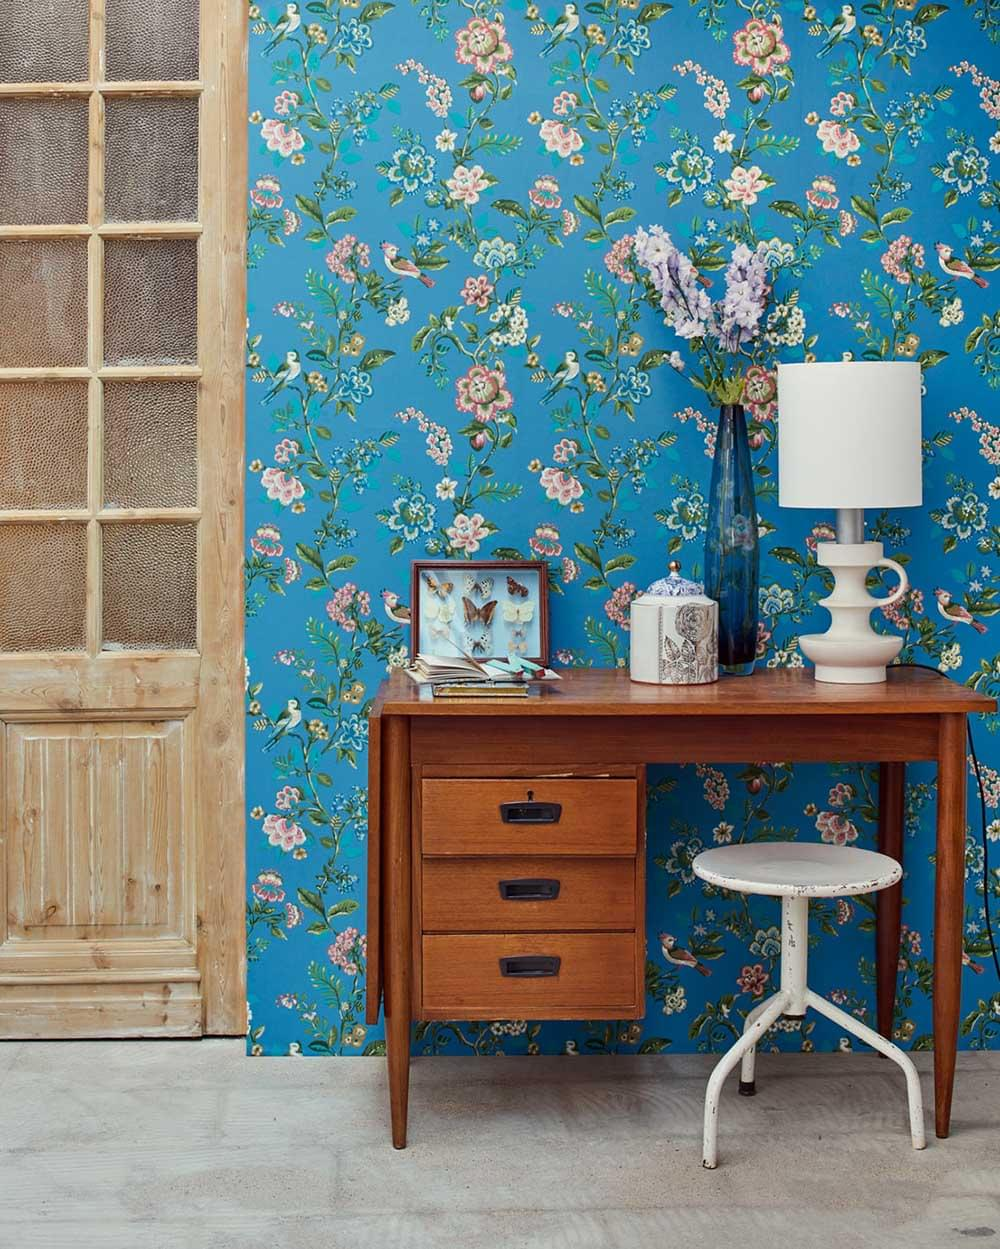 2-Behangsite-bloemen-Pip-Studio-Eijffinger-behang-tips-trends